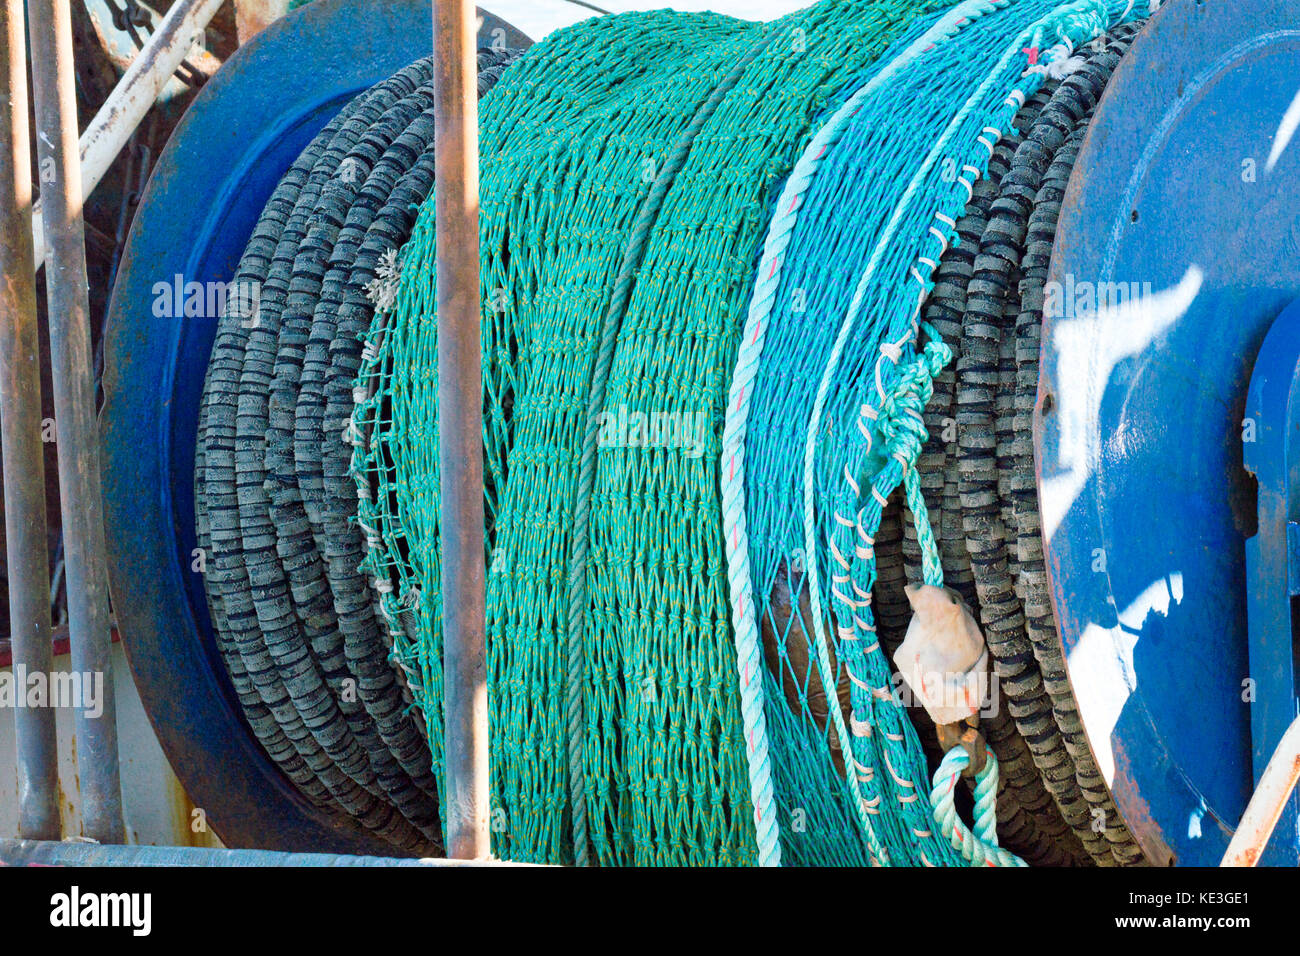 Fishing nets in the harbor in Hanstholm, Denmark - Stock Image